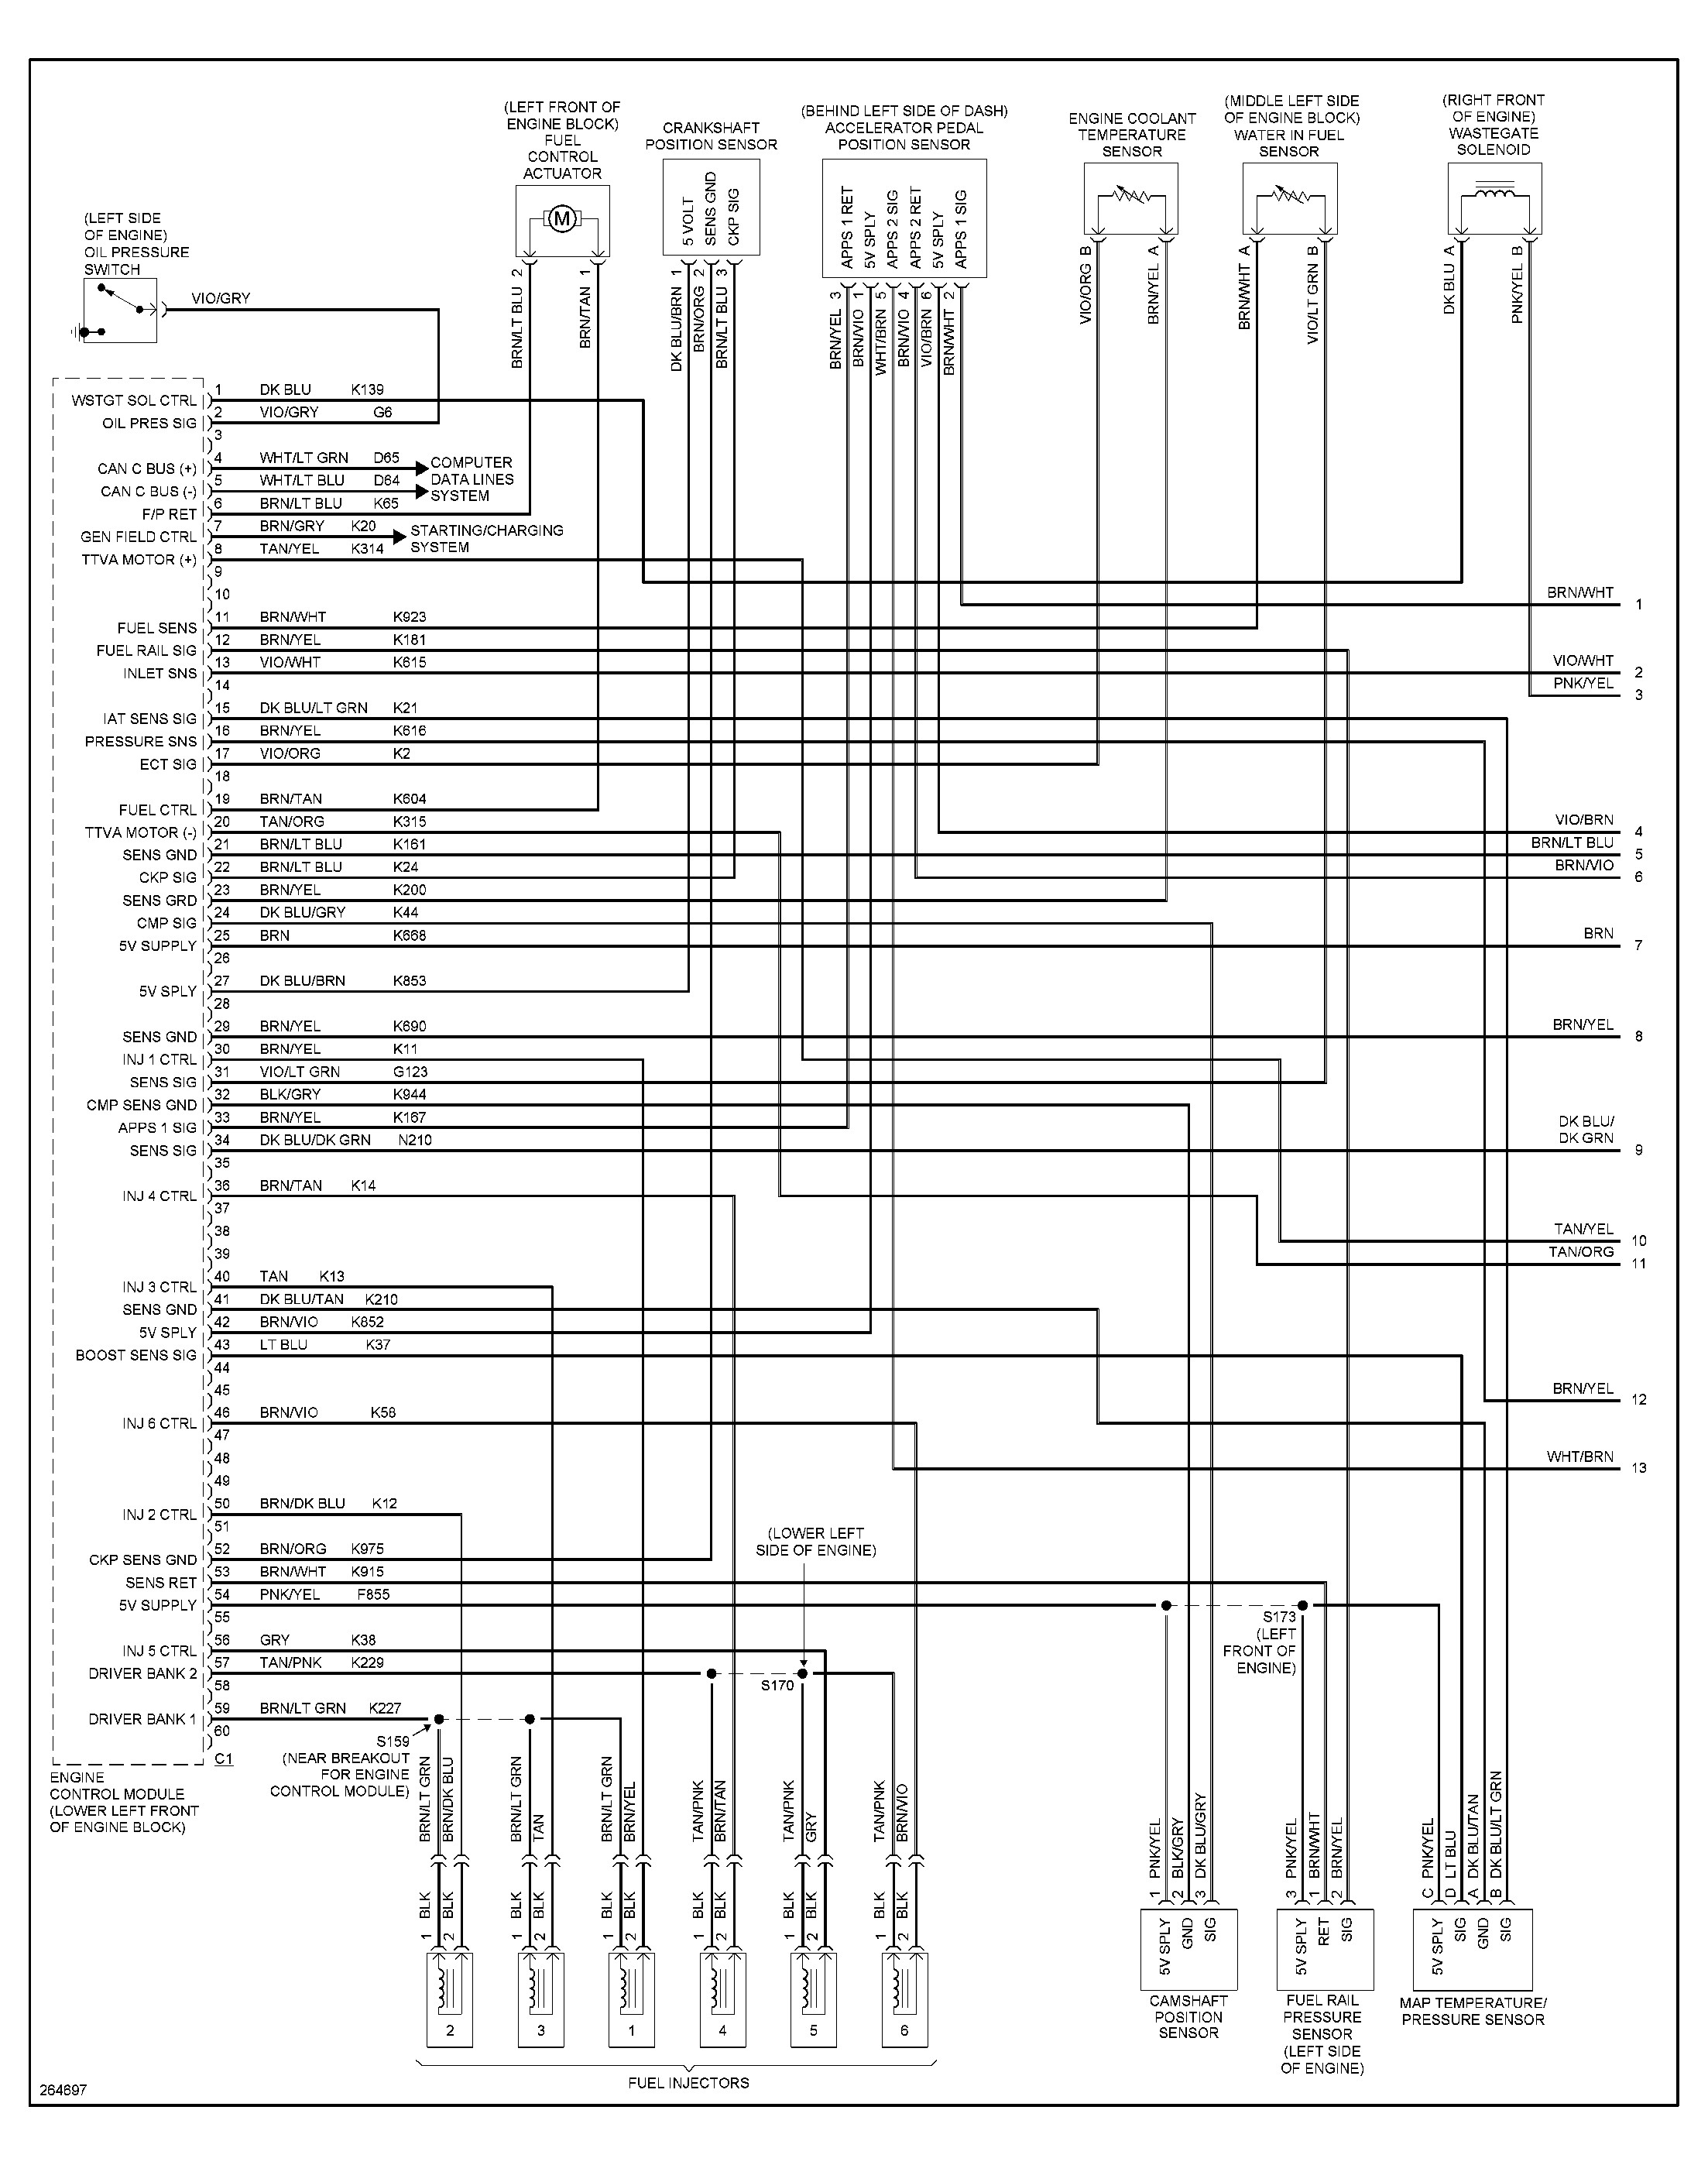 dodge ram wiring harness diagram | free wiring diagram 1998 dodge ram 1500 wiring diagram free picture 97 dodge ram trailer wiring diagram free picture #5